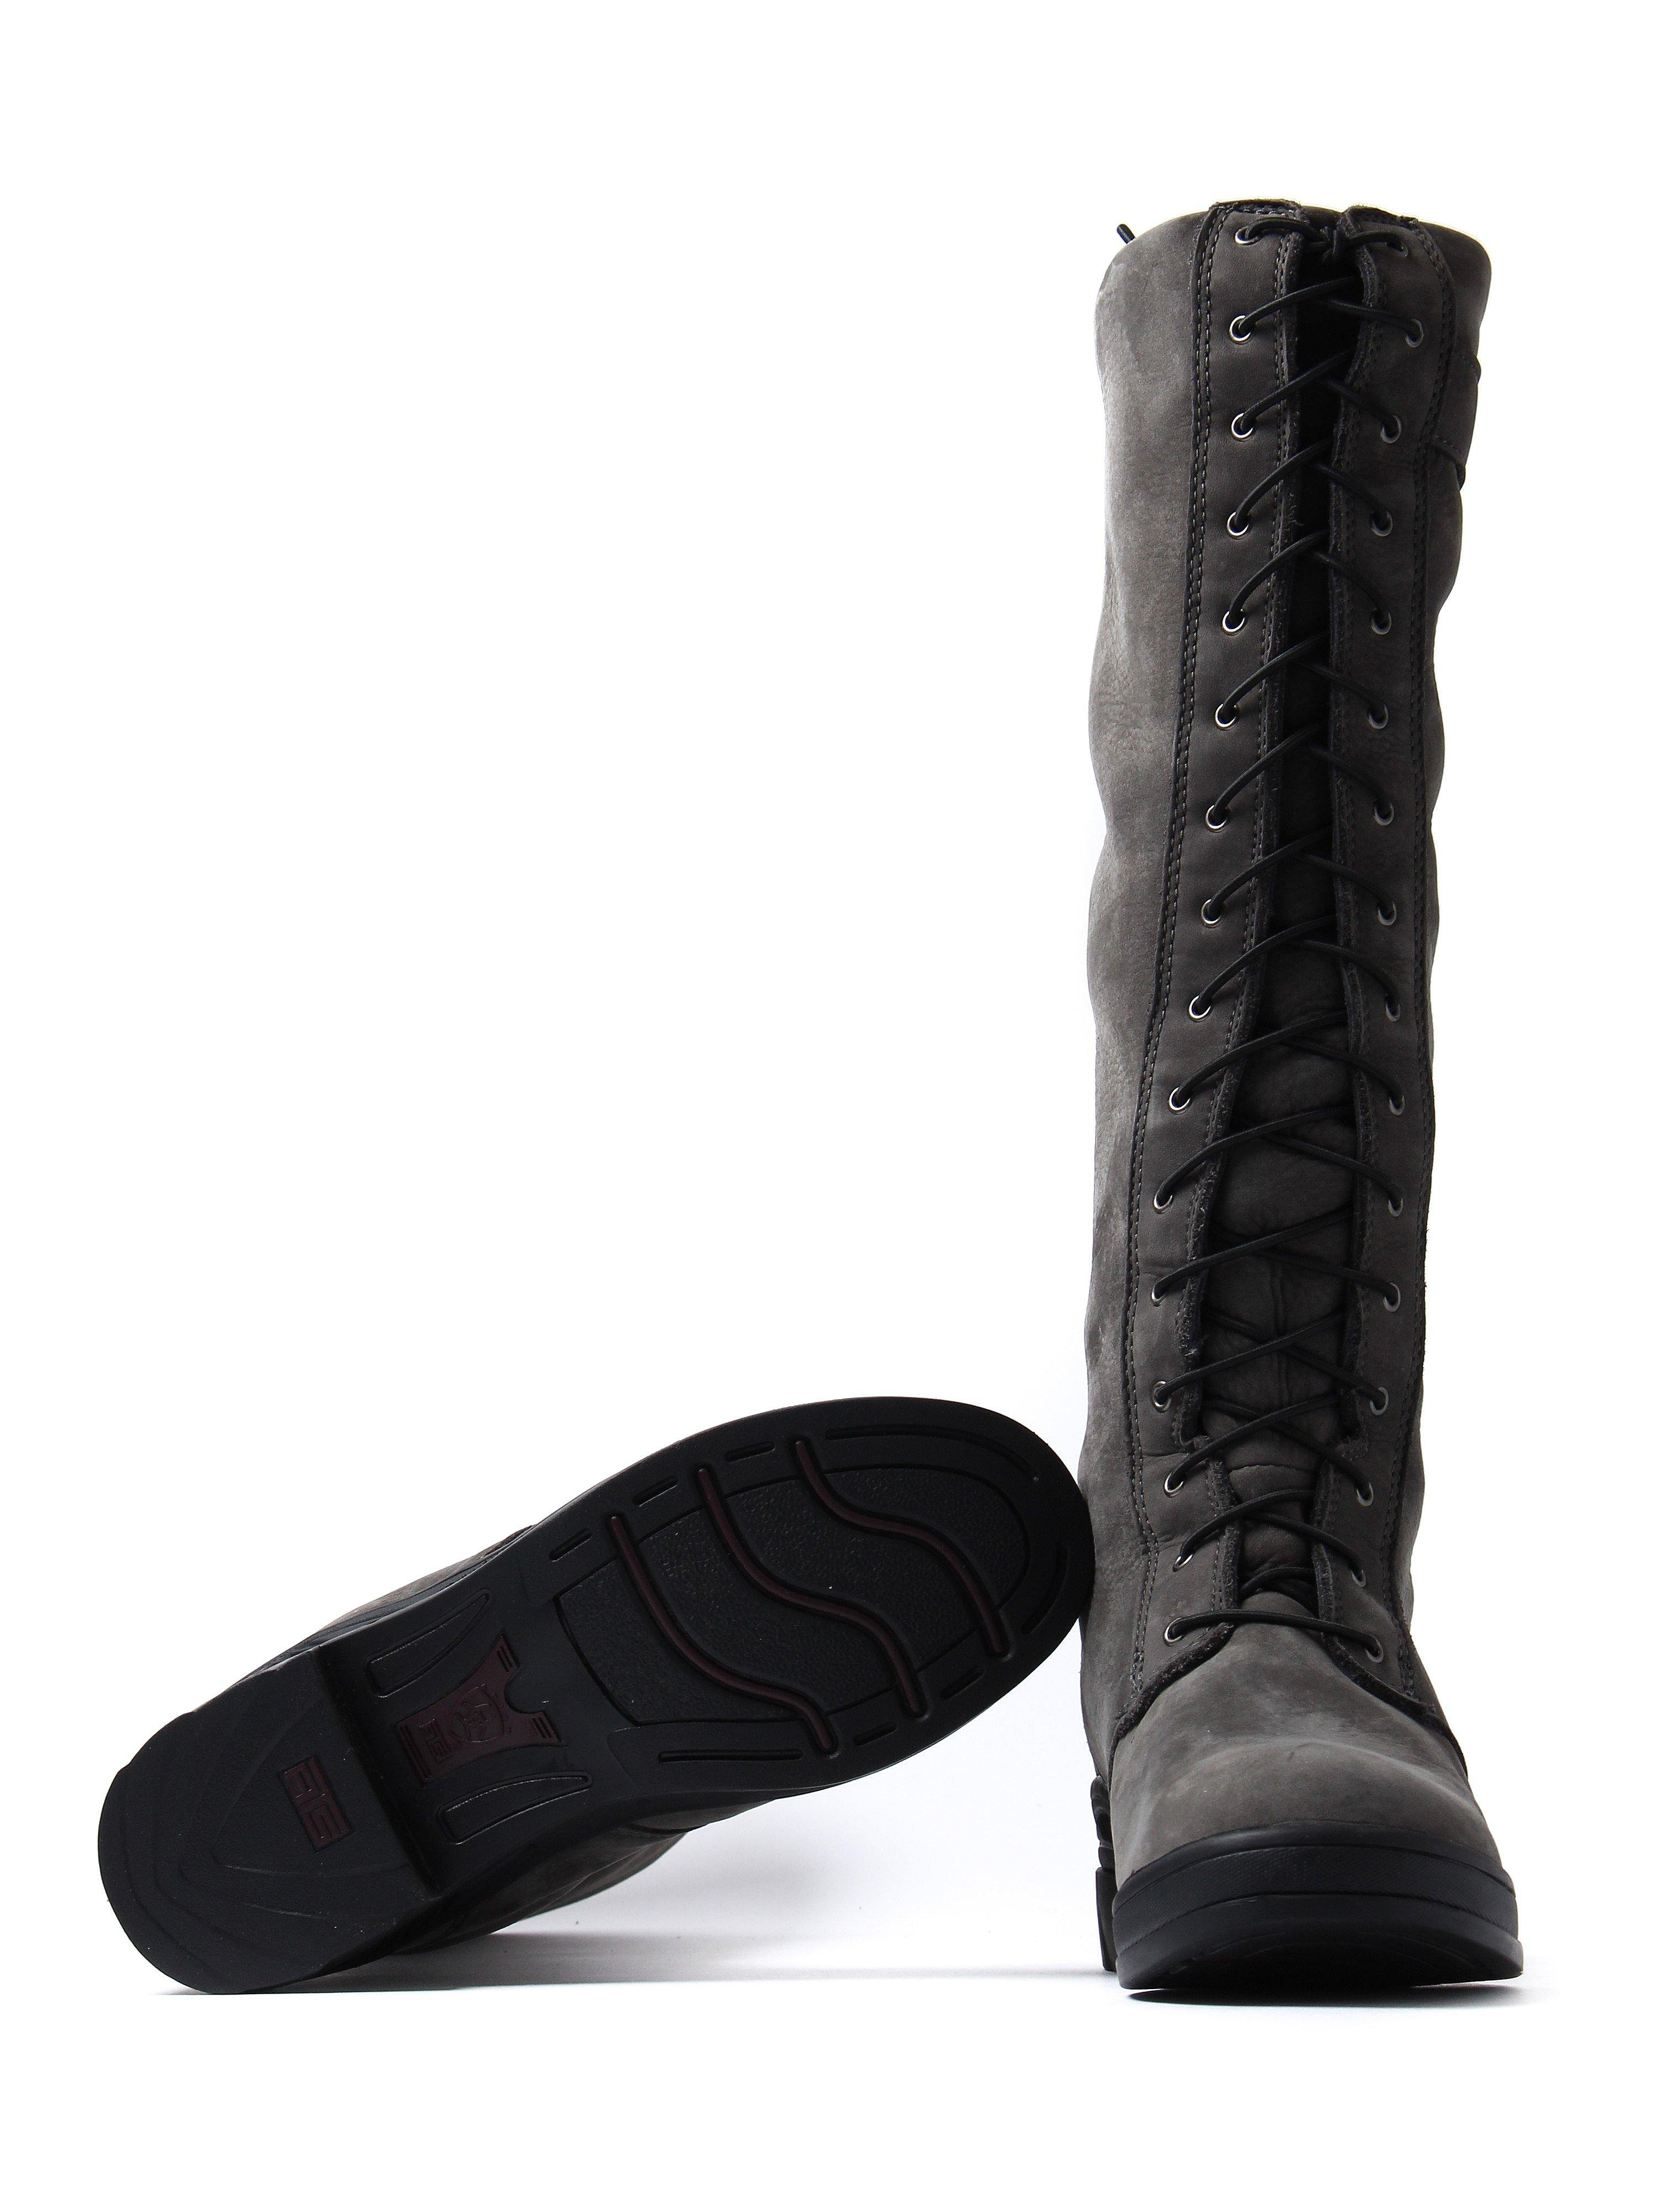 Ariat Women's Coniston H2O Insulated Tall Boots - Charcoal Suede